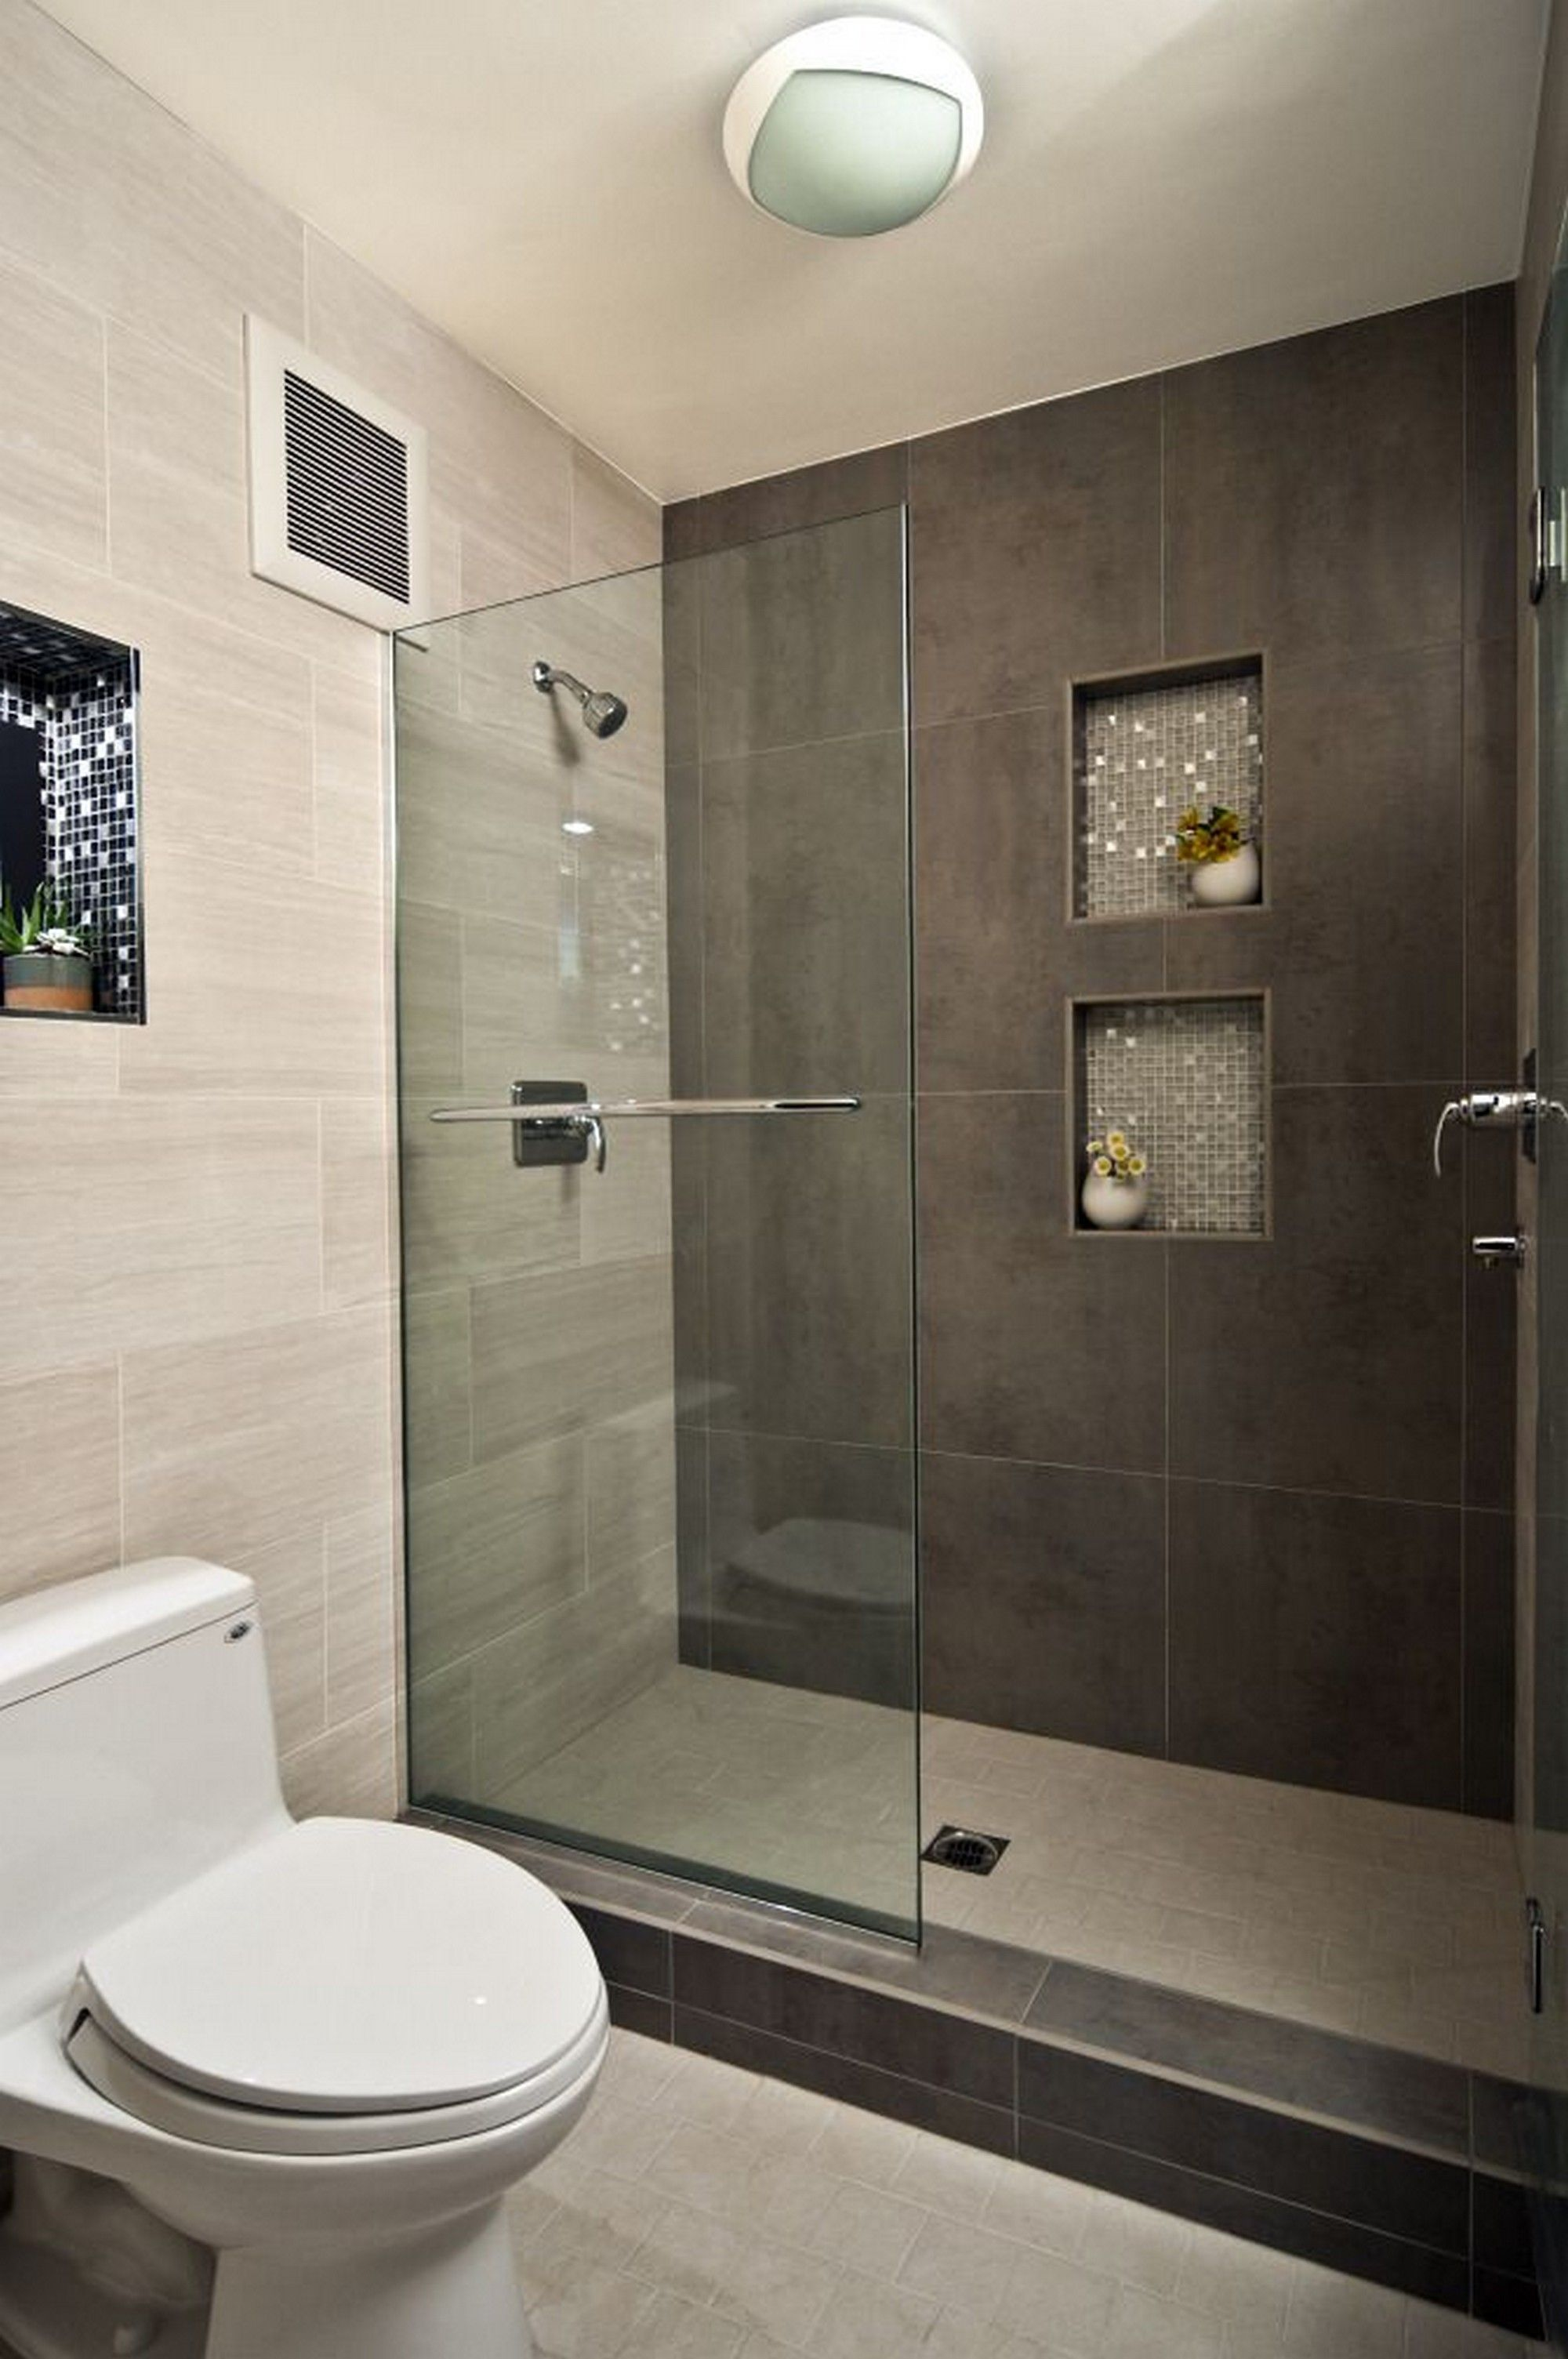 Tiny Bathroom Shower Google Search Small Bathroom Remodel Bathroom Shower Design Bathroom Remodel Master